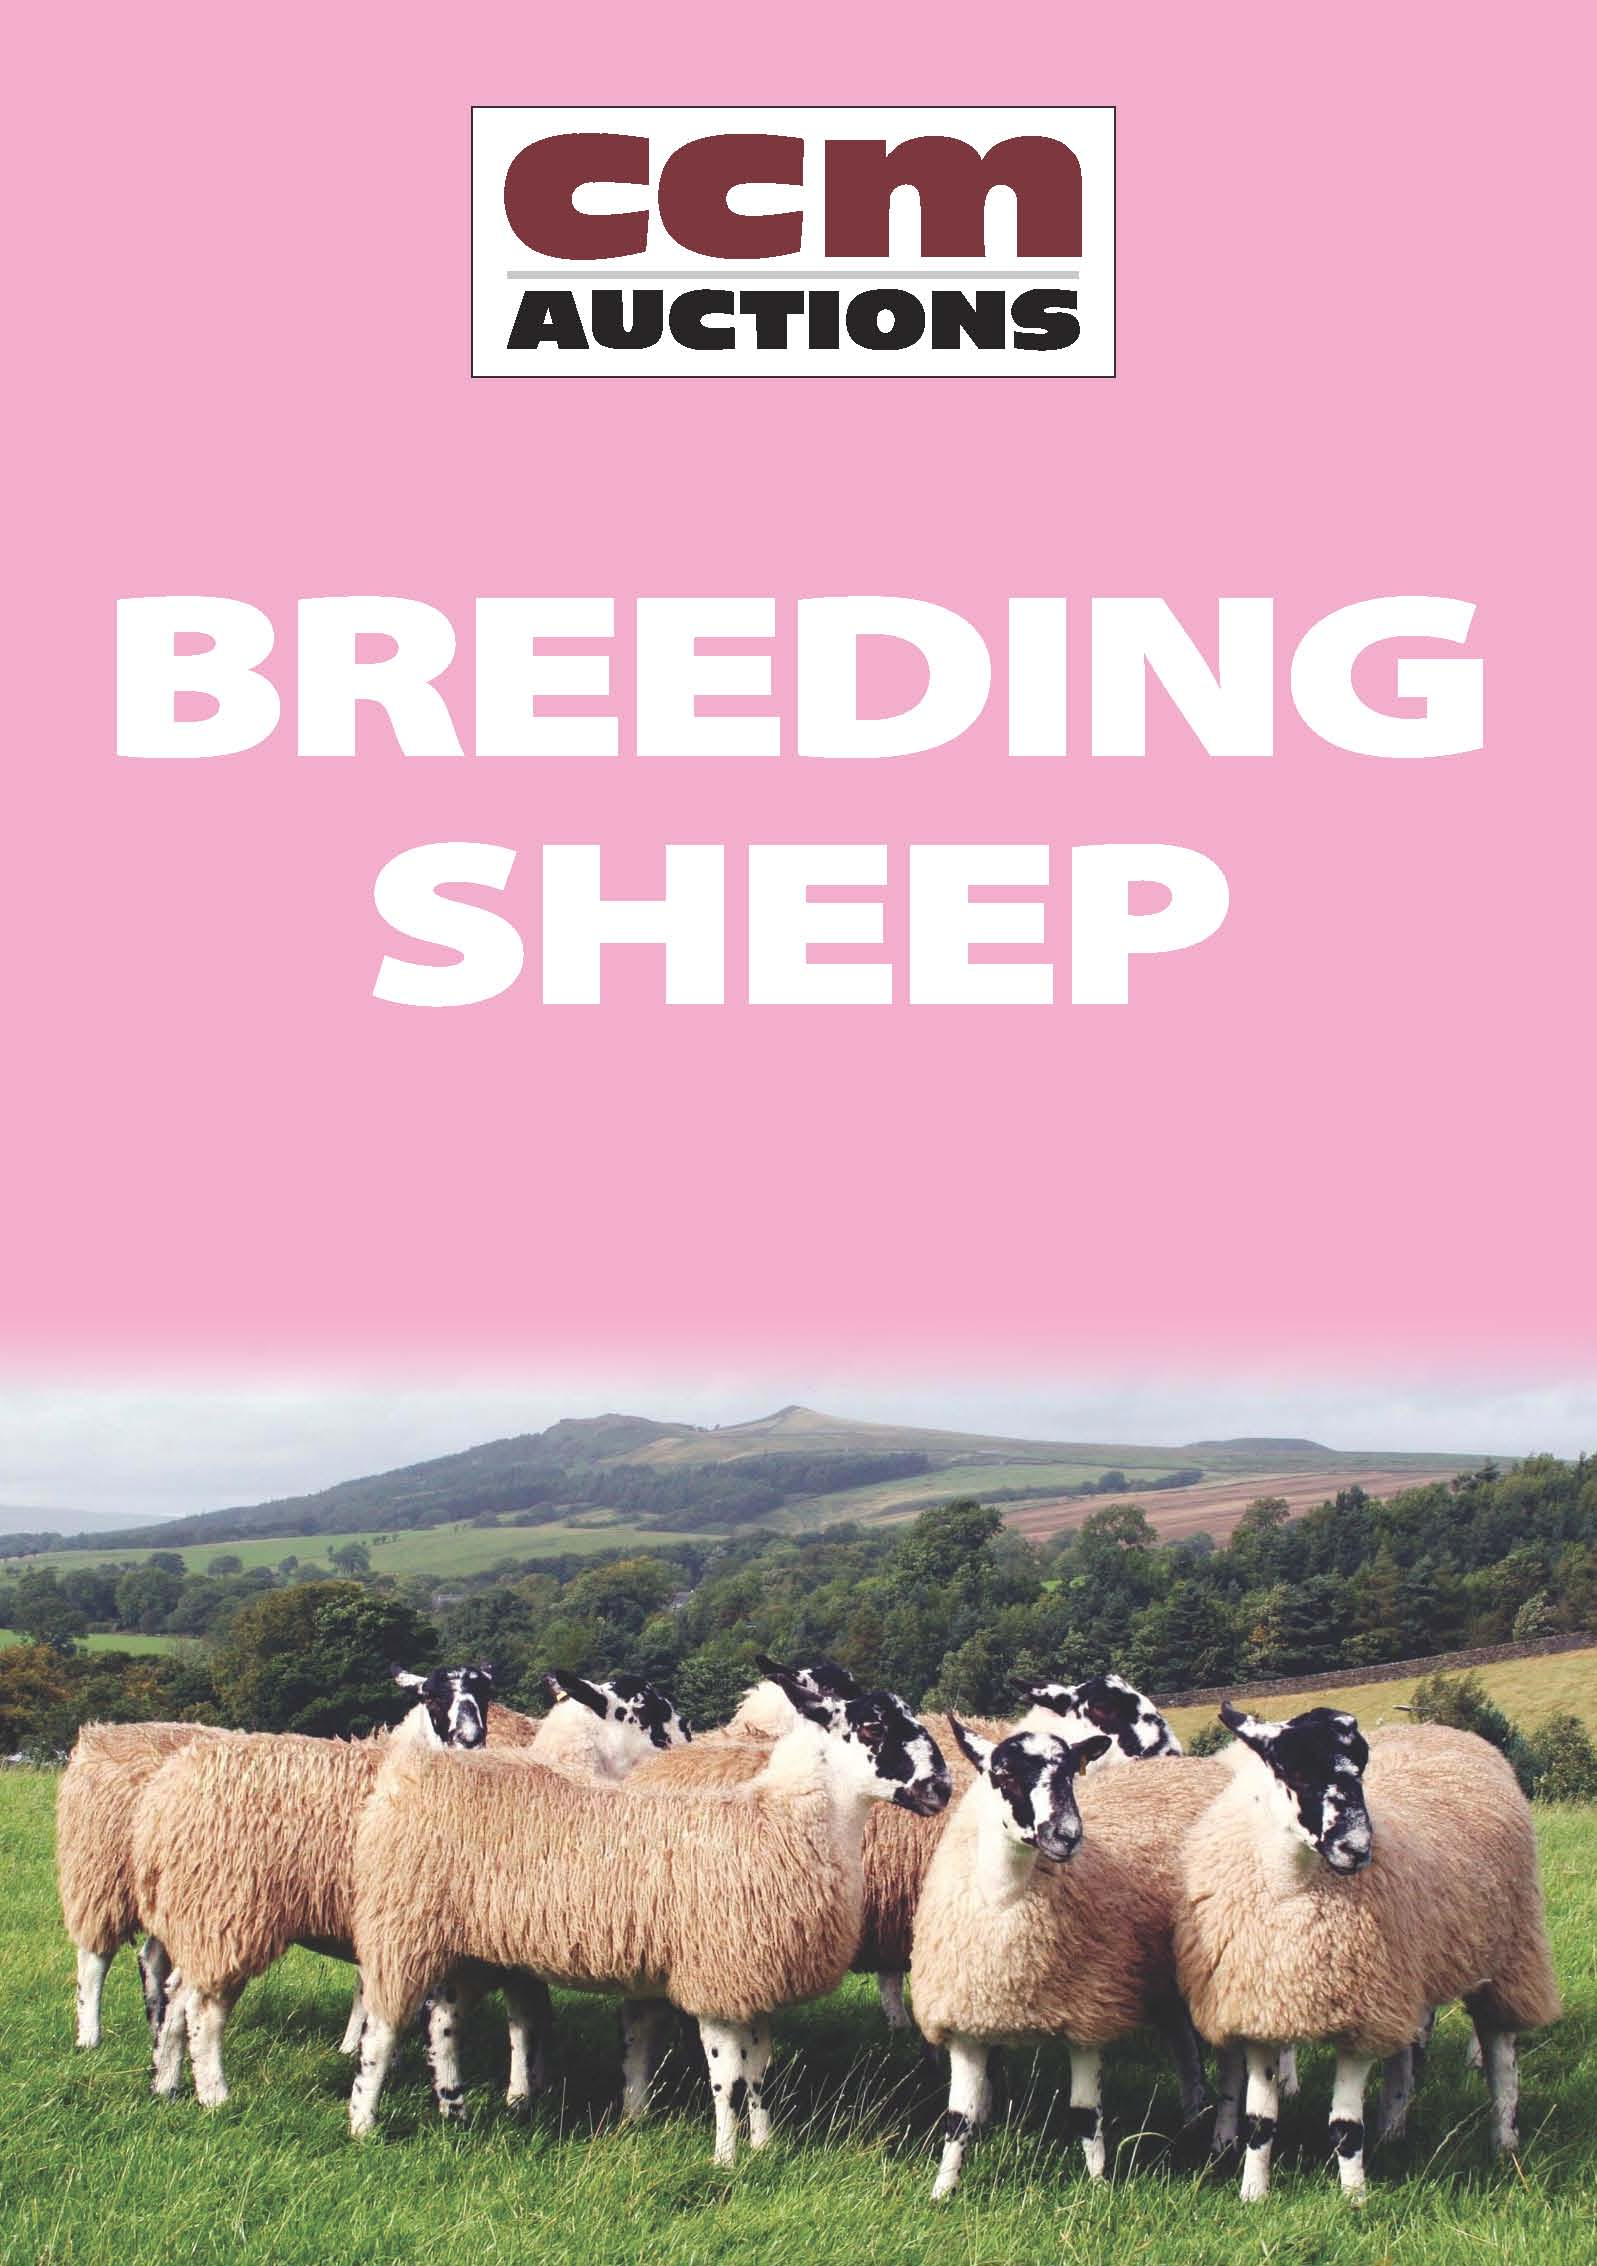 BREEDING SHEEP - MONDAY 18TH APRIL 2016